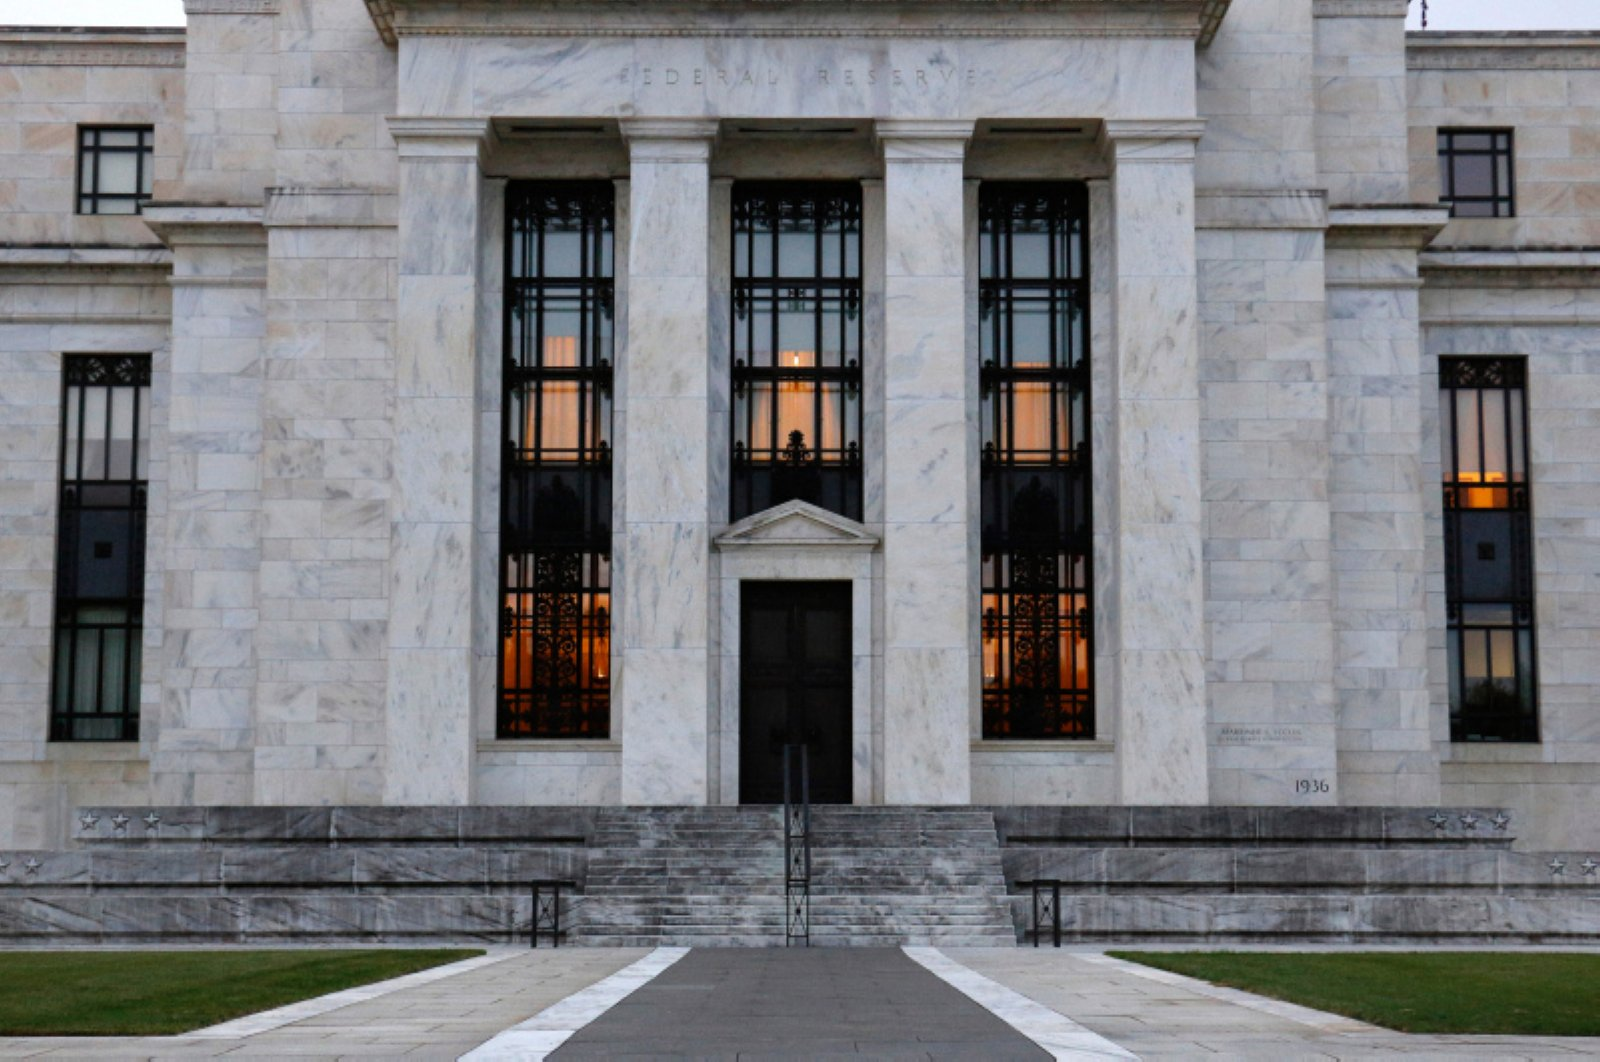 The Federal Reserve Building in Washington D.C., U.S., July 31, 2019. (AP Photo)